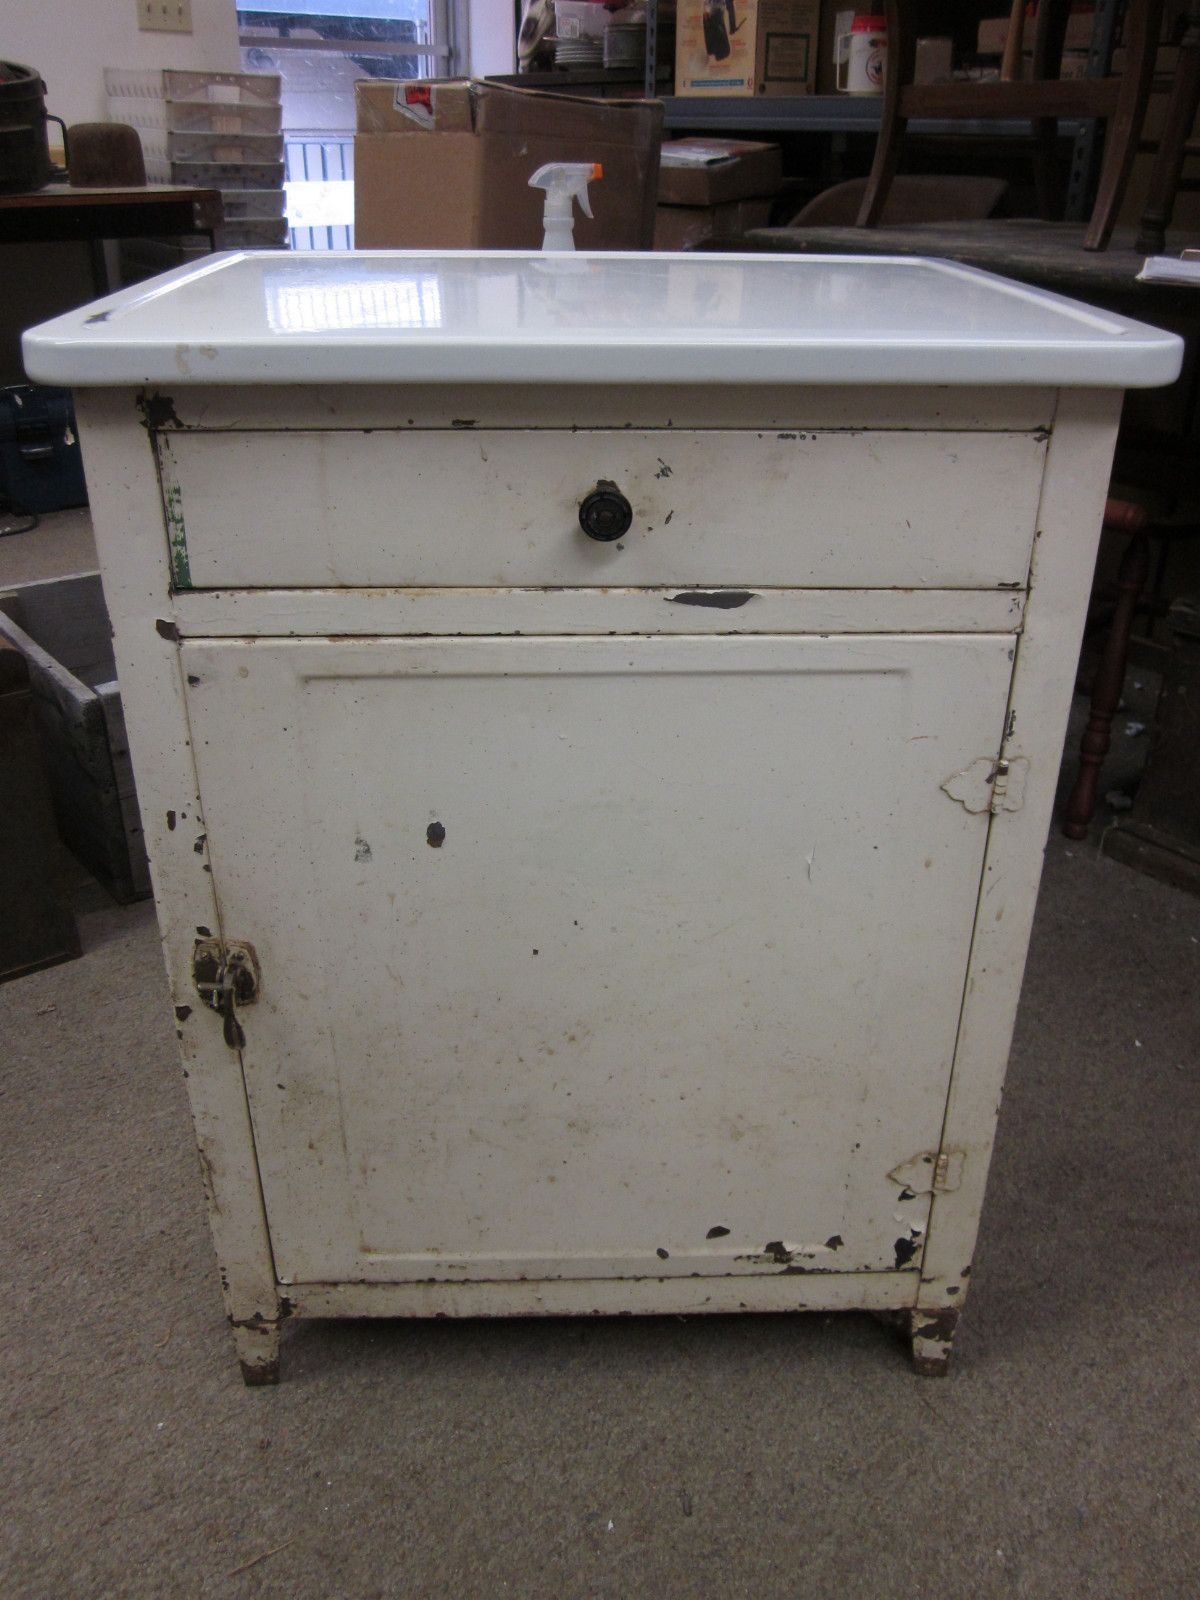 Beau Old Metal Cabinets For Sale | The Seller Was Asking $224 For It! Itu0027s Very  Similar To Ours Except .